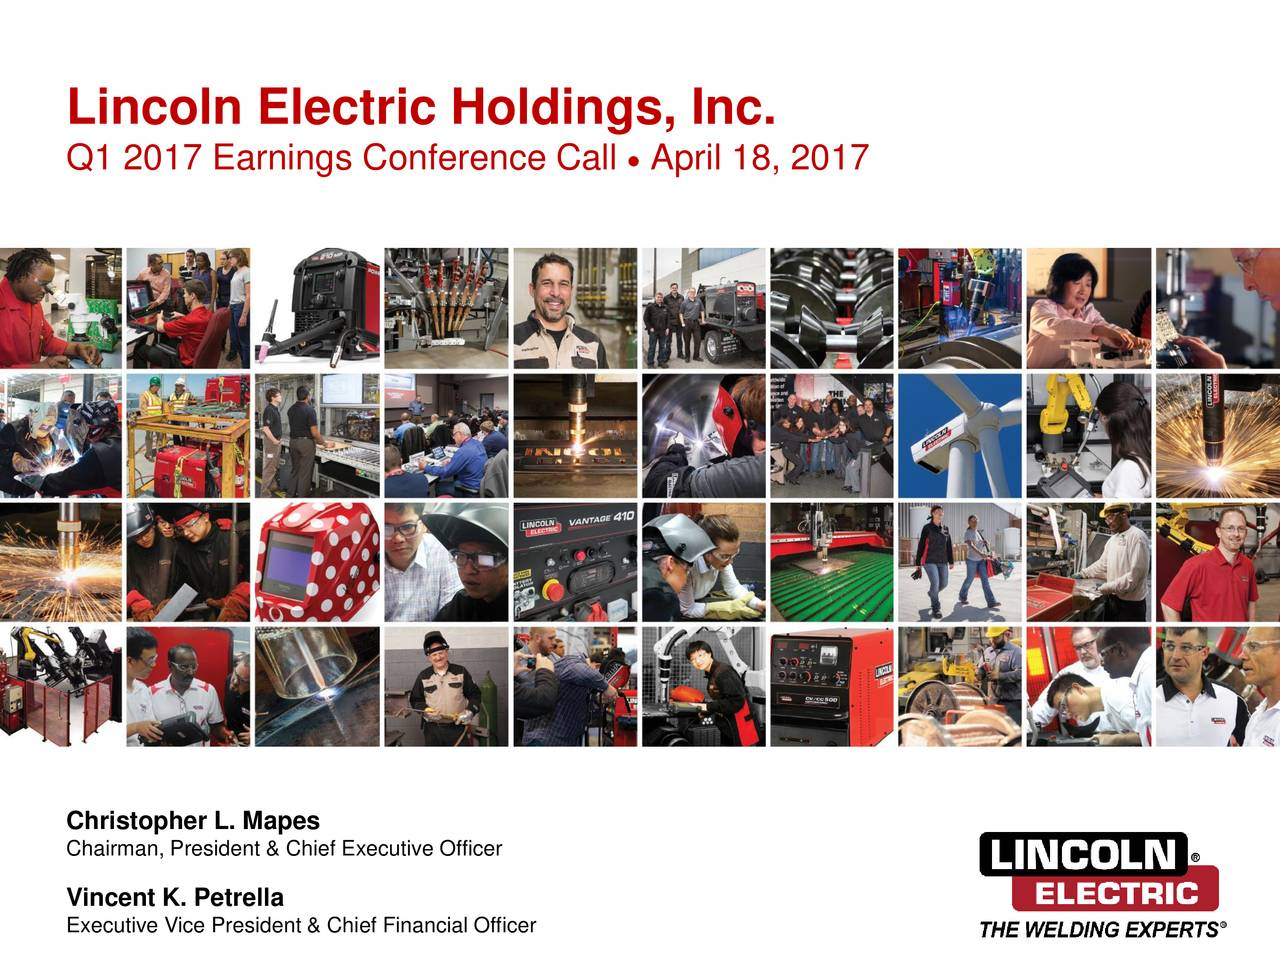 Q1 2017 Earnings Conference Call April 18, 2017 Christopher L. Mapes Chairman, President & Chief Executive Officer Vincent K. Petrella Executive Vice President & Chief Financial Officer